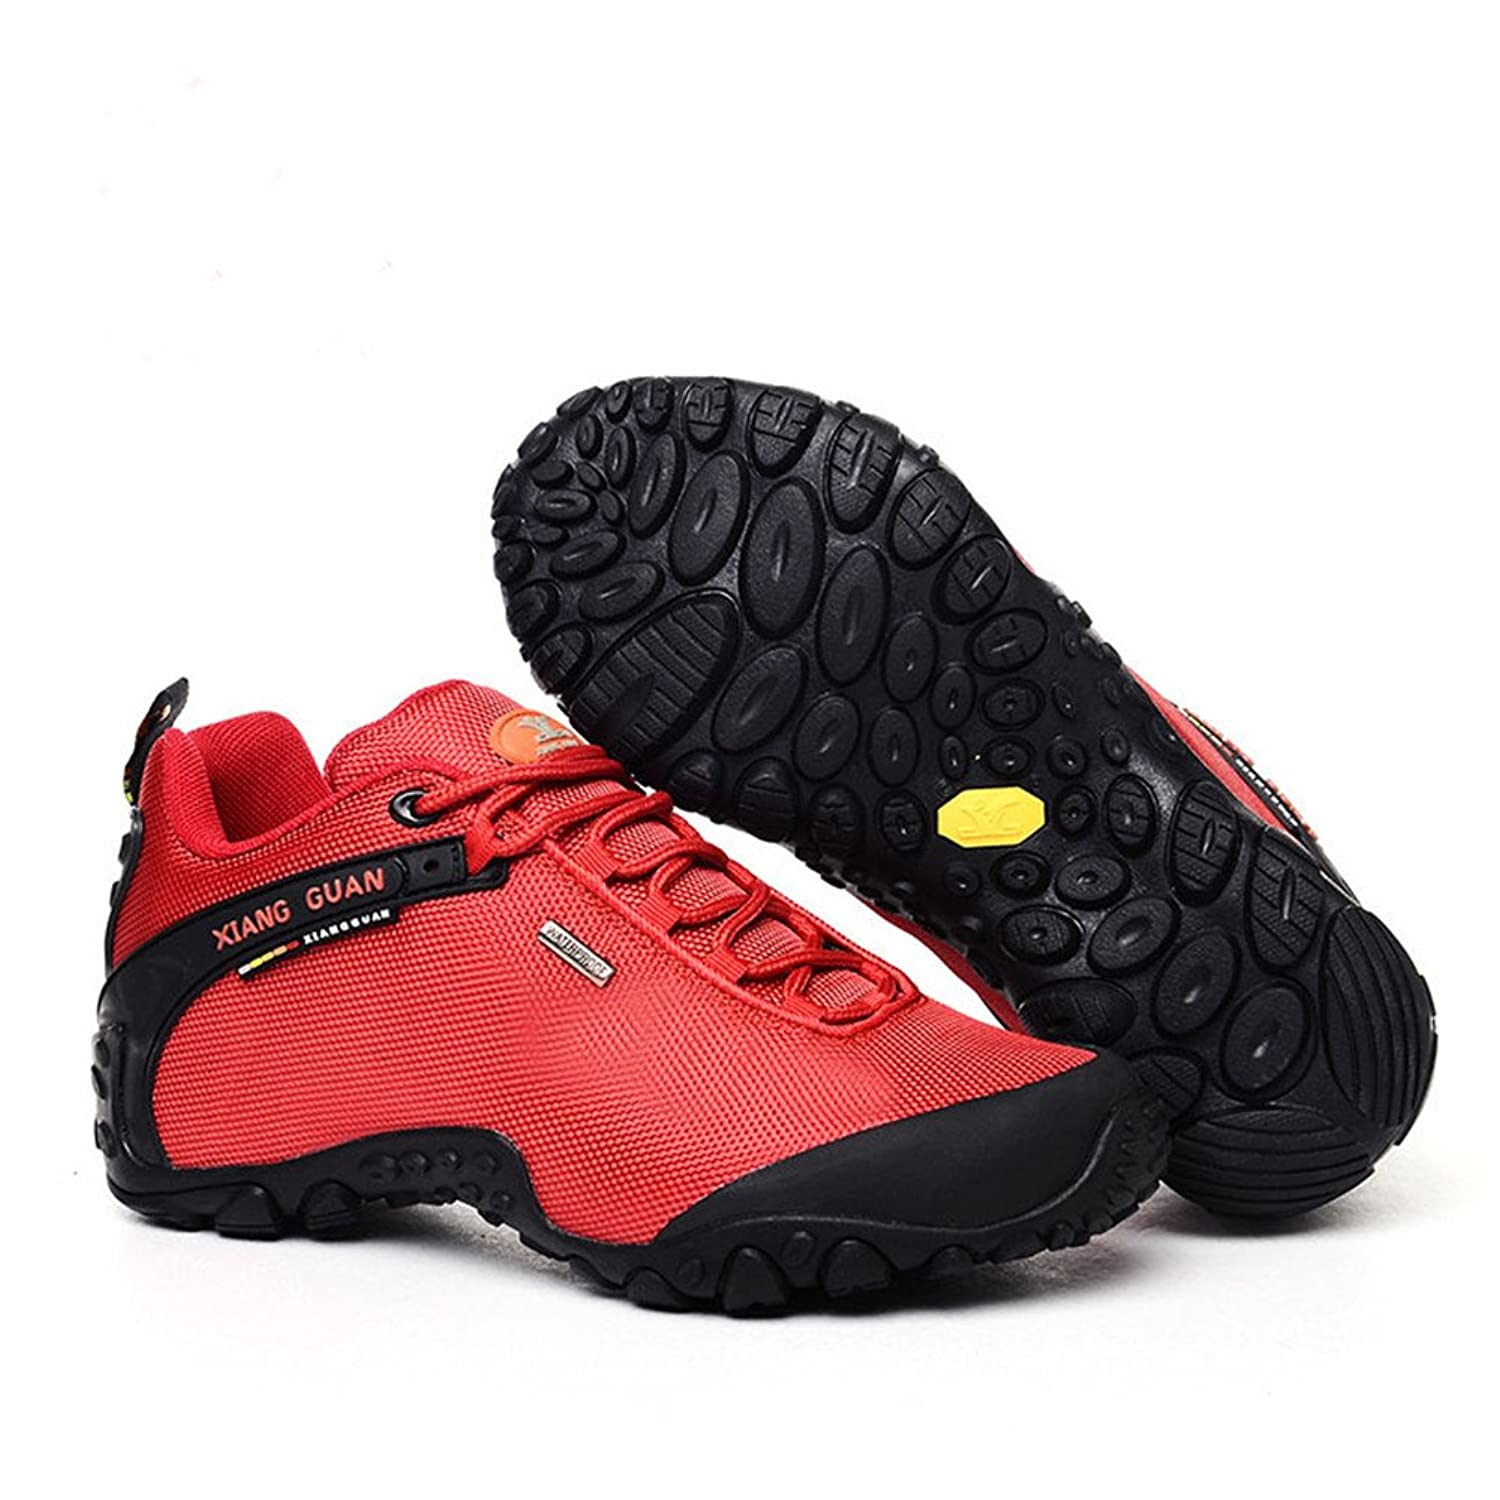 2016 Women's Ventilator Hiking Shoe Sneakers,Runing Shoes